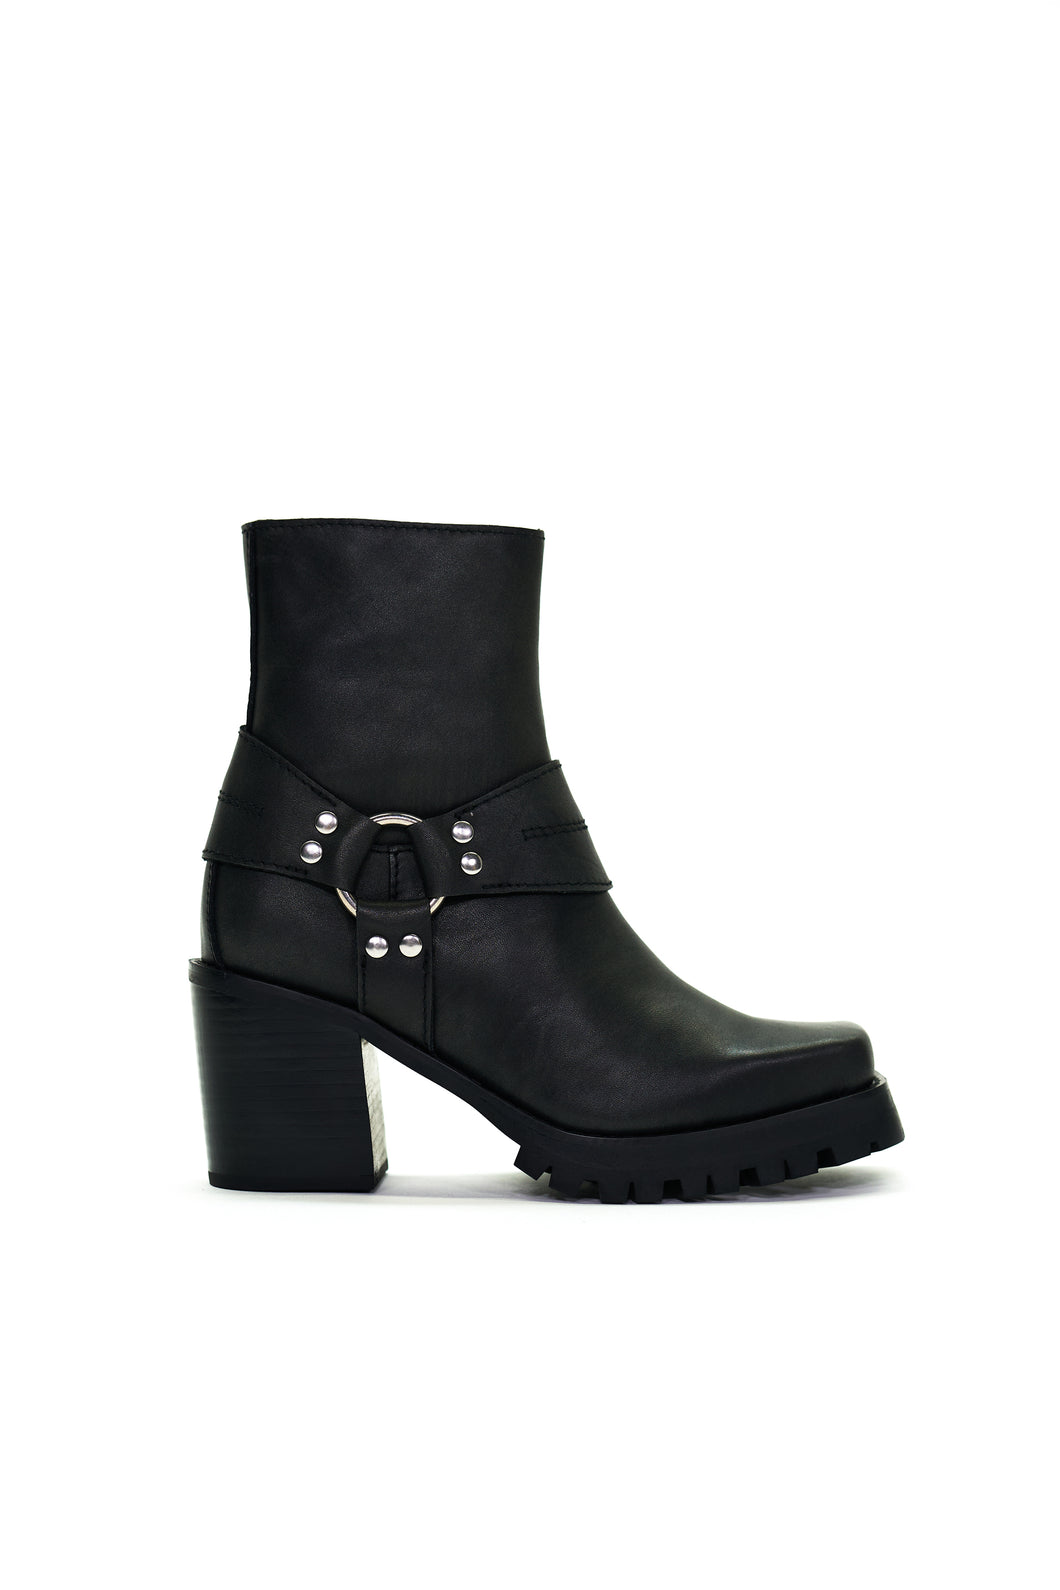 Biker Boot, Ankle Boots, Schwarze Stiefel, Harness, Fashion Boot, Blockabsatz von Jeffrey Campbell